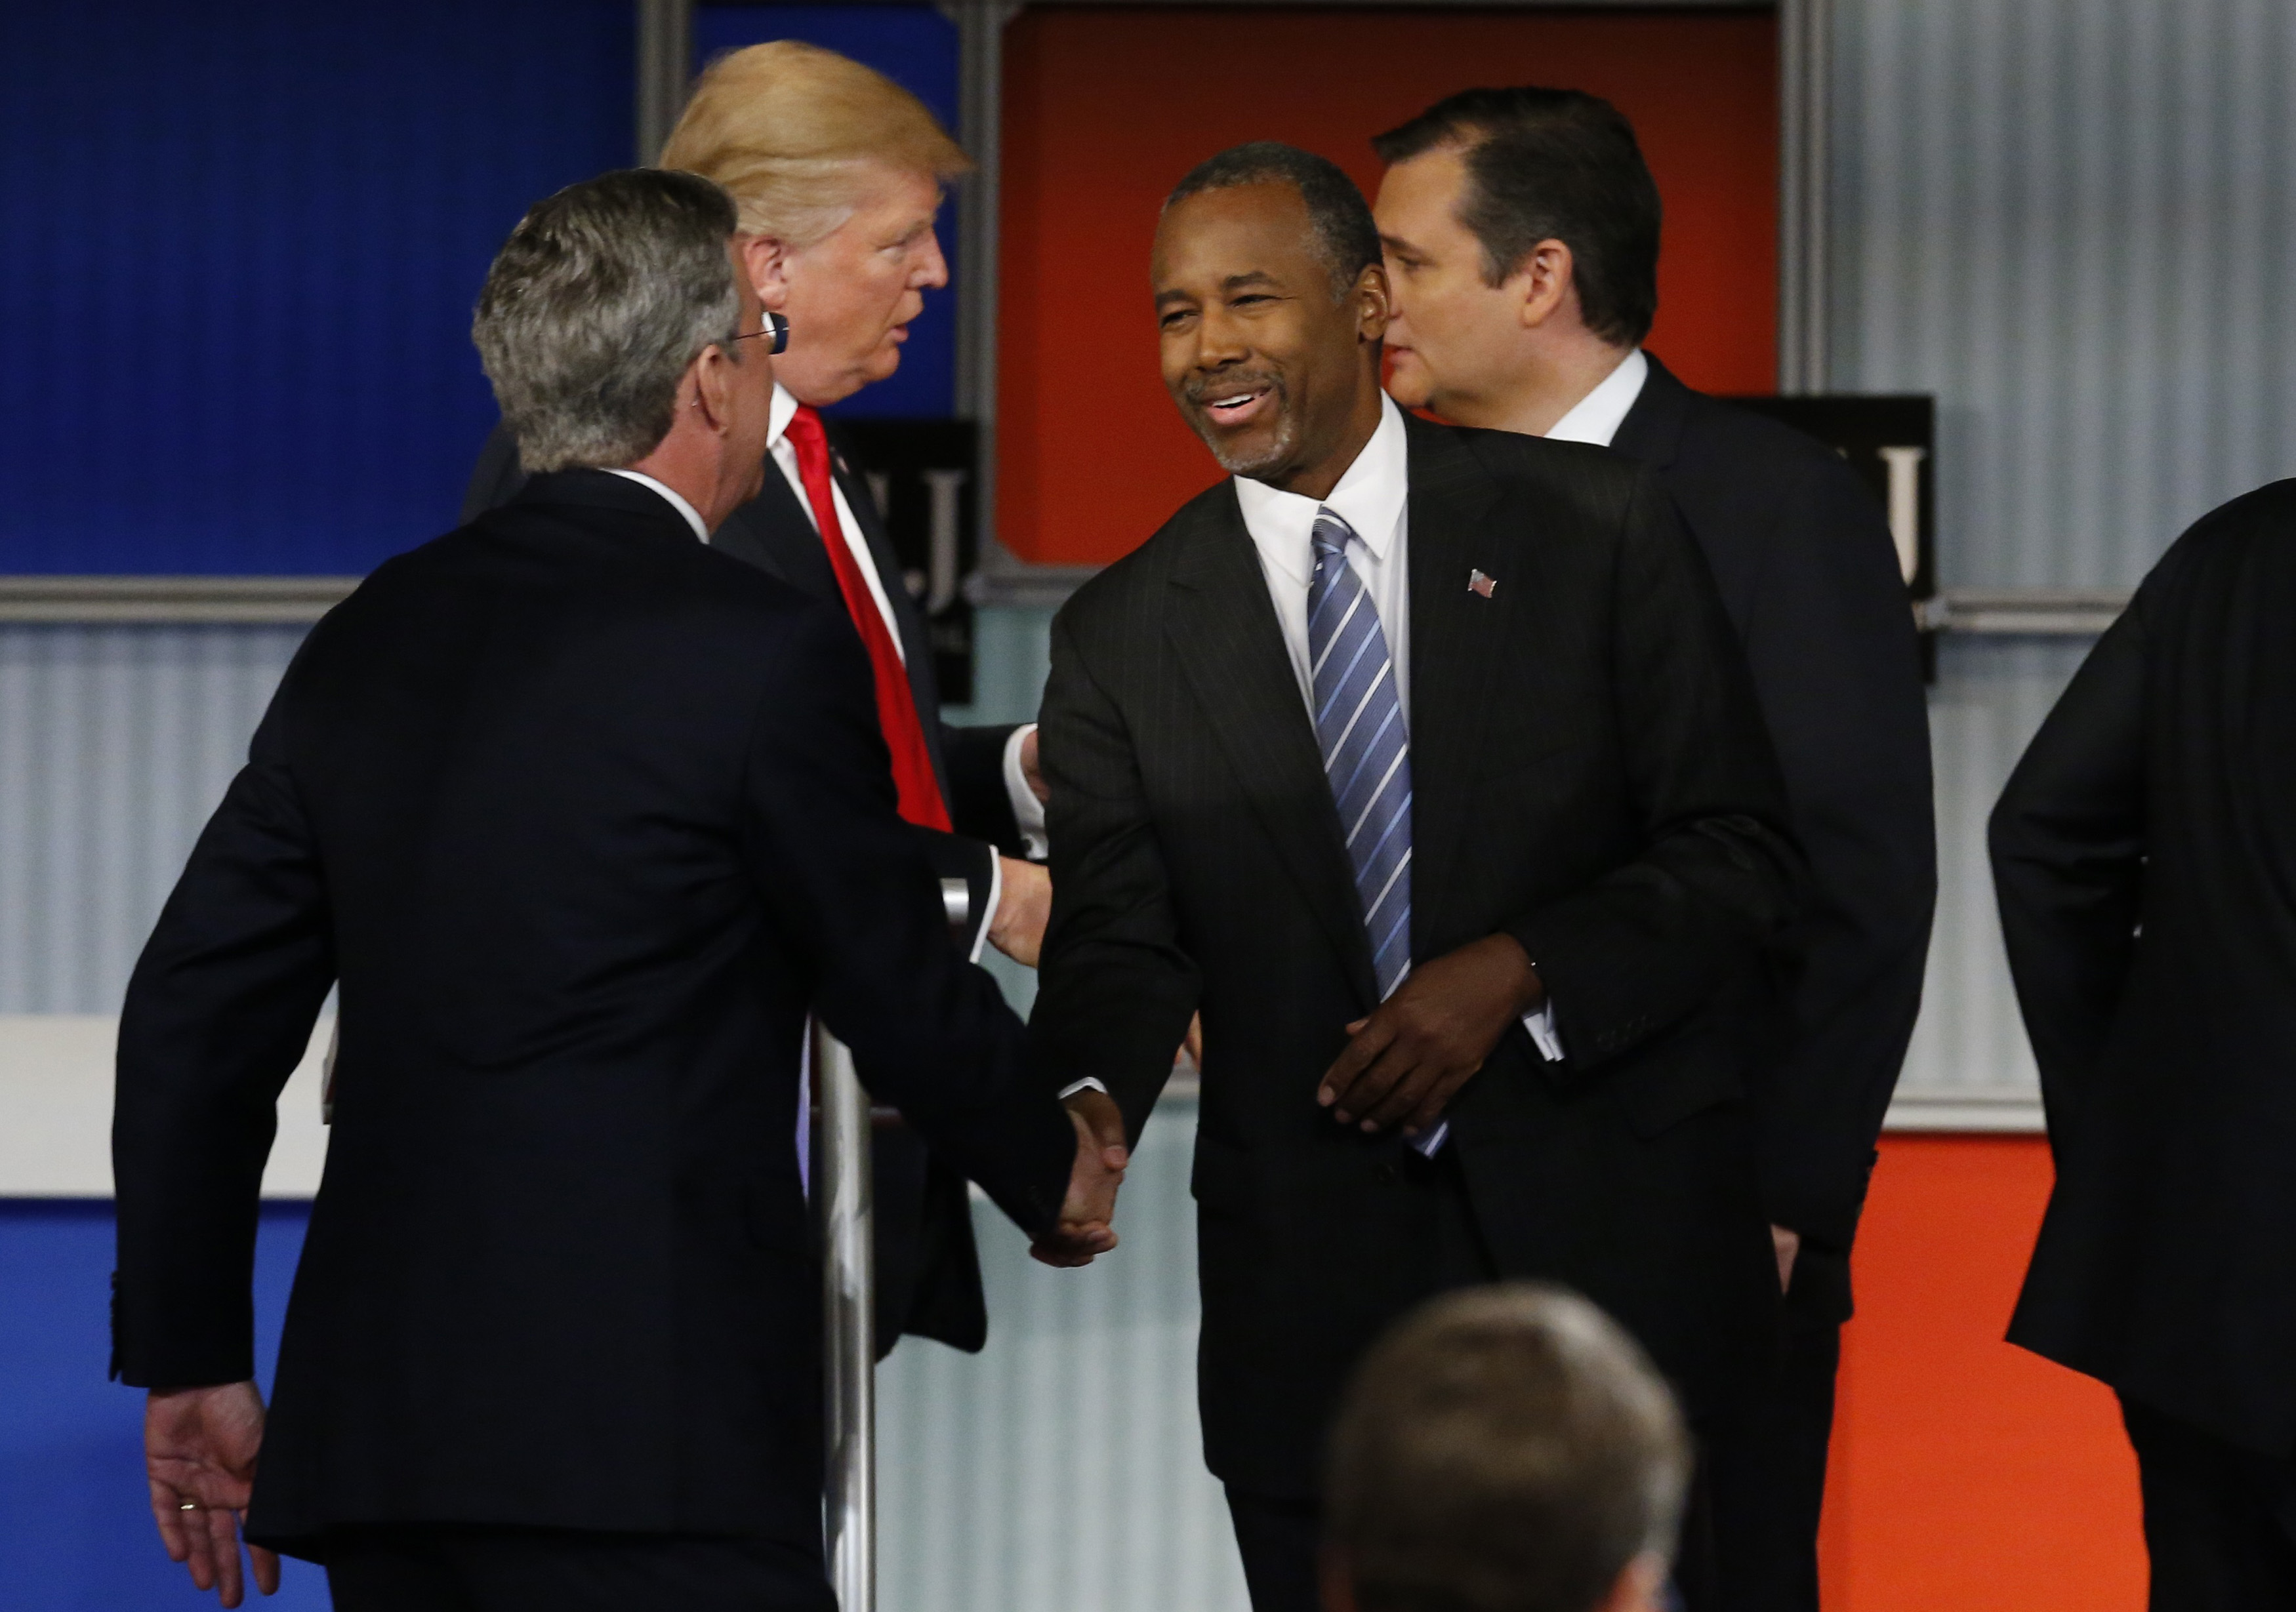 Republican U.S. presidential candidates Bush, Trump, Carson and Cruz shake hands at the conclusion of the debate held by Fox Business Network for the top 2016 U.S. Republican presidential candidates in Milwaukee